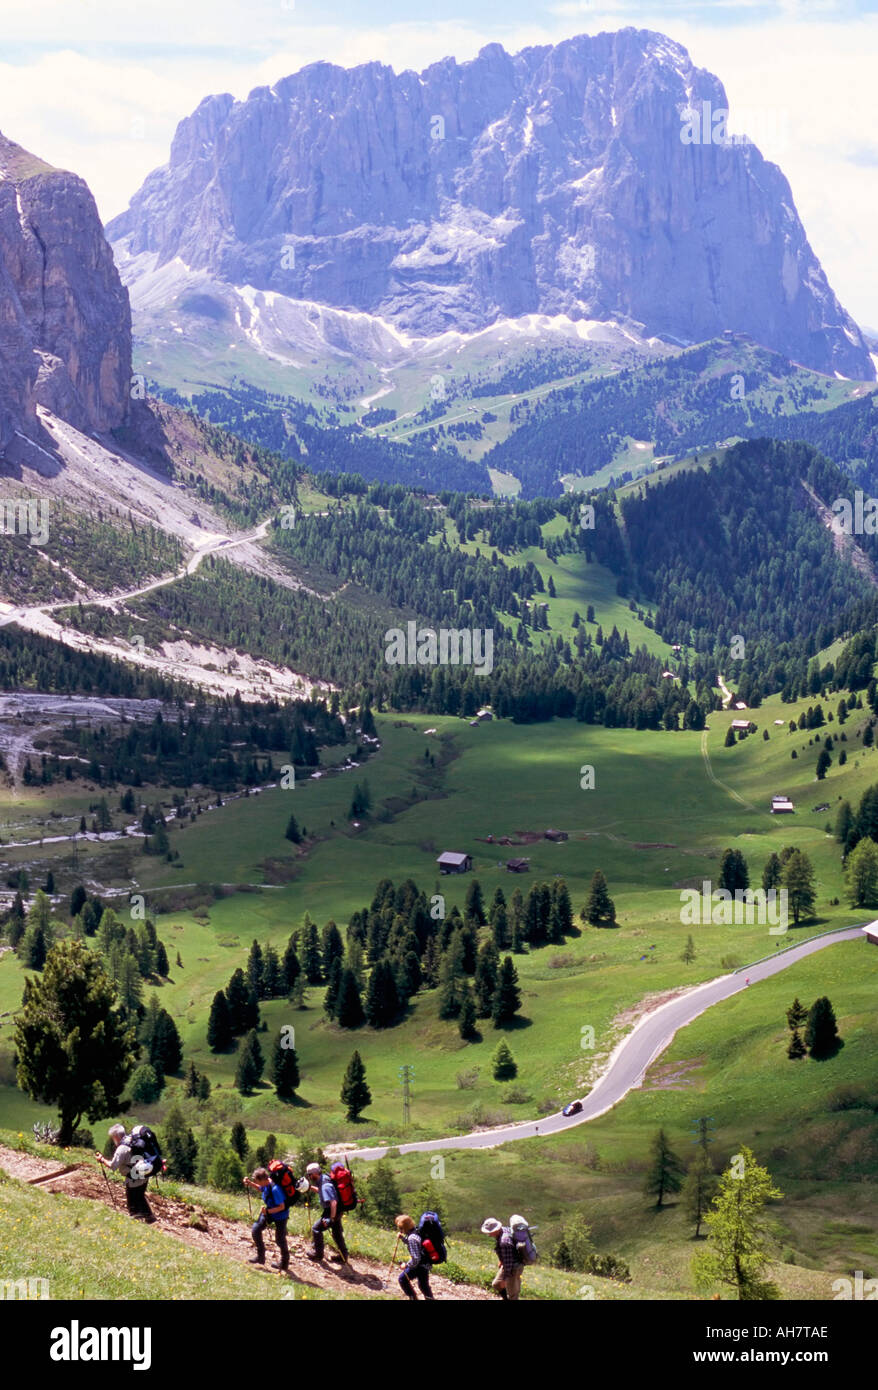 Hikers on Alta Via Dolomiti Via Ferrata trail and Gardena Pass below and Sassolungo range 3181m Dolomites Alto Adige Italy - Stock Image